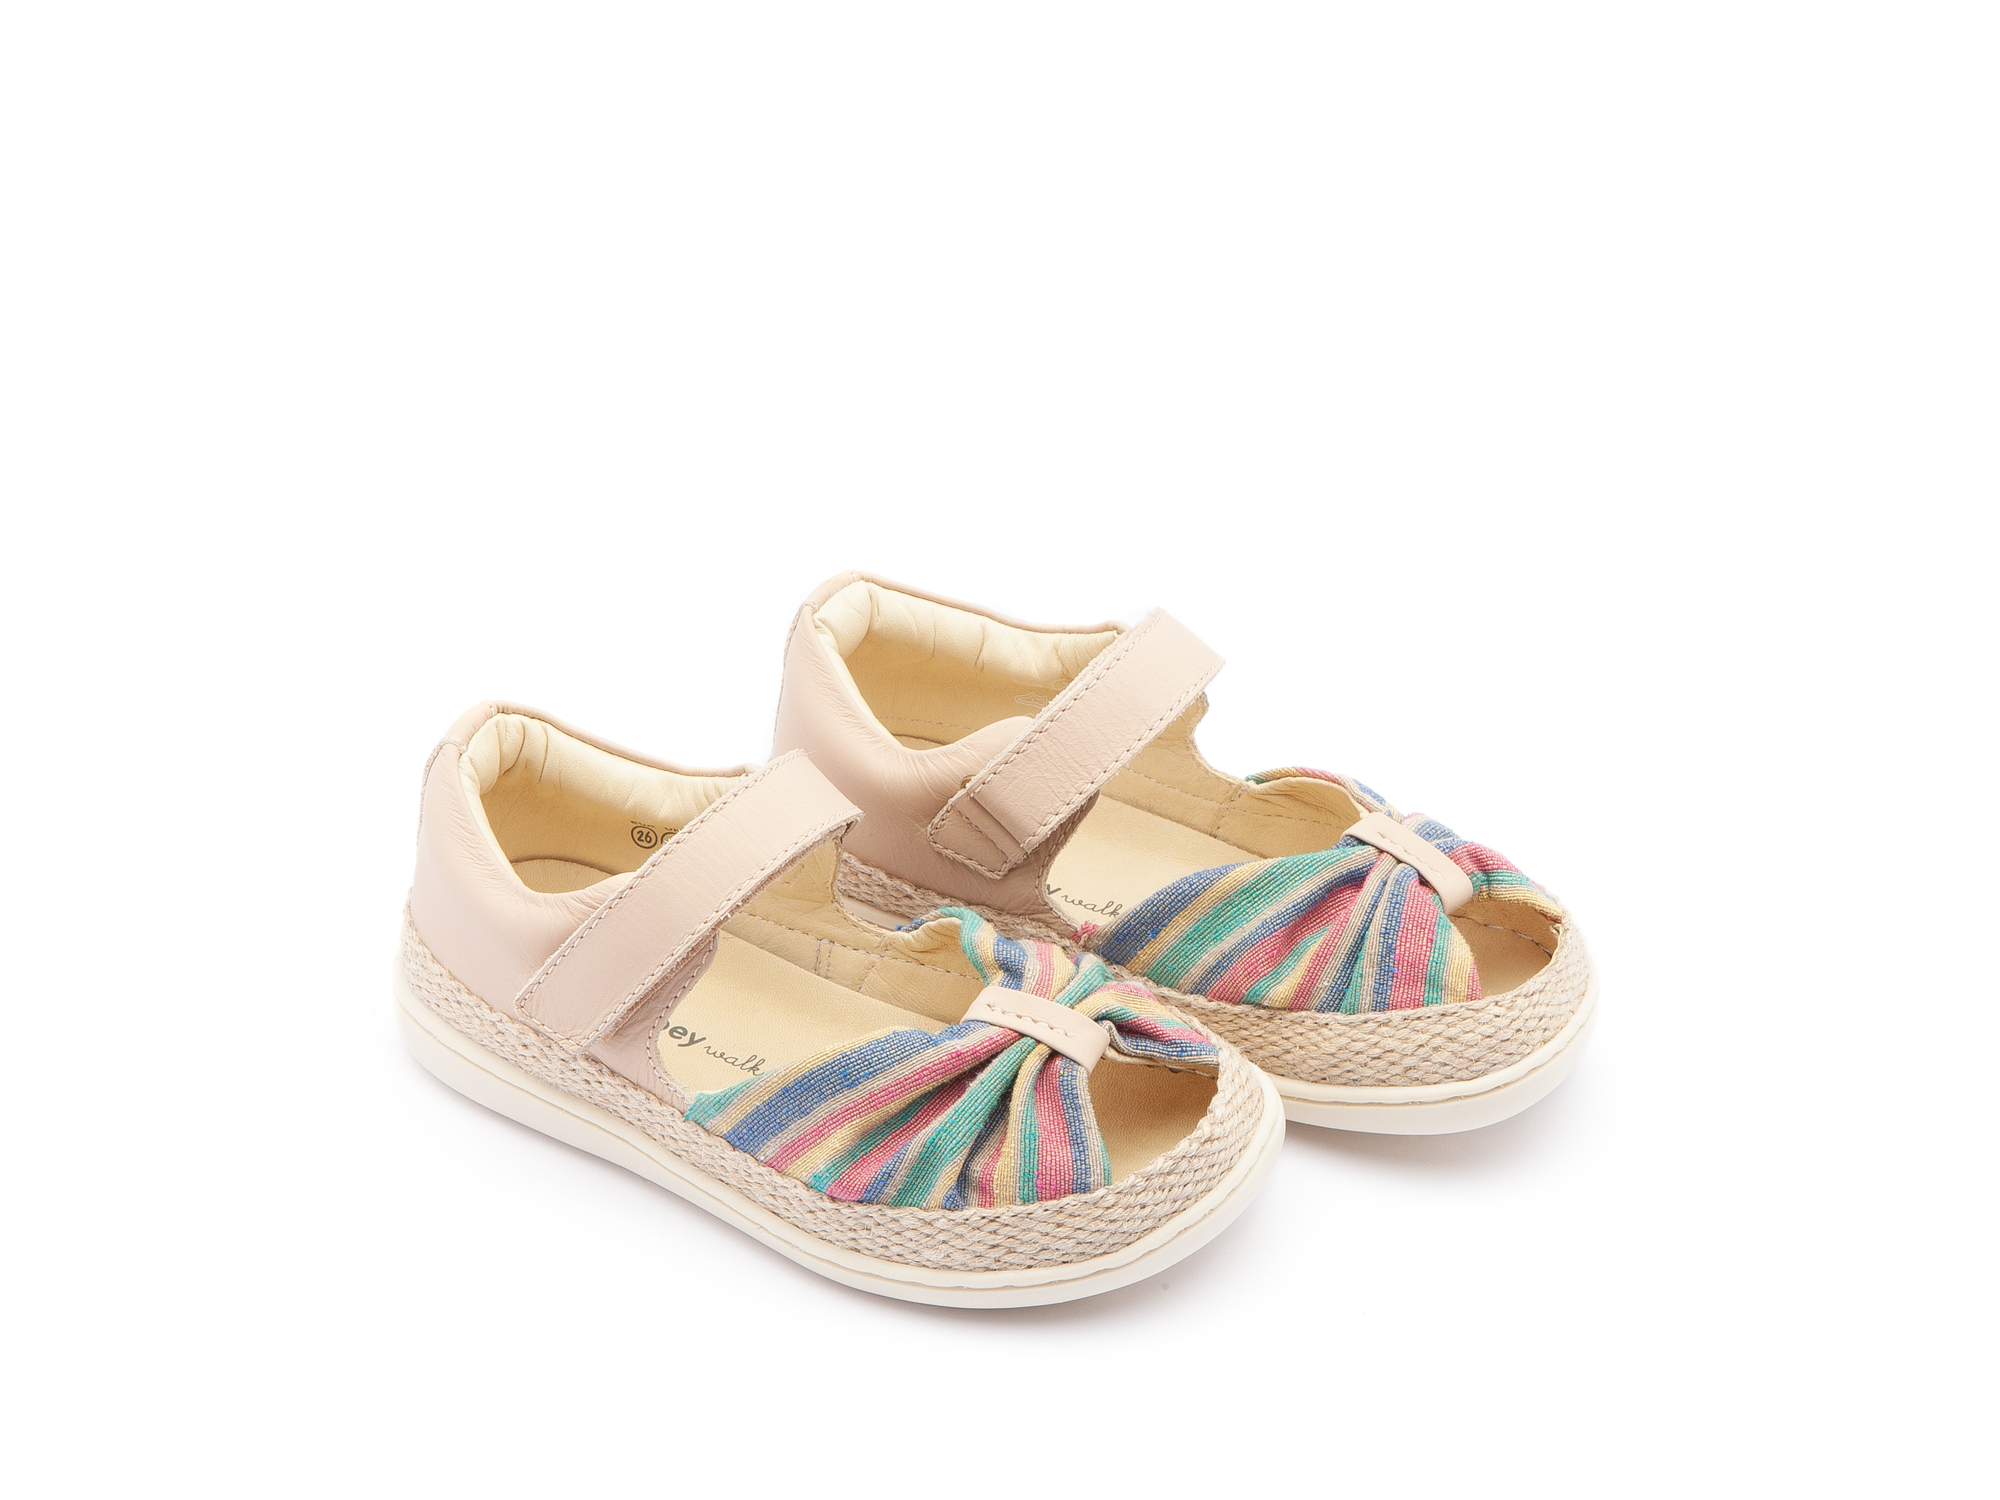 Sandália Little Coast Rainbow Canvas/ Yogurt Toddler 2 à 4 anos - 0